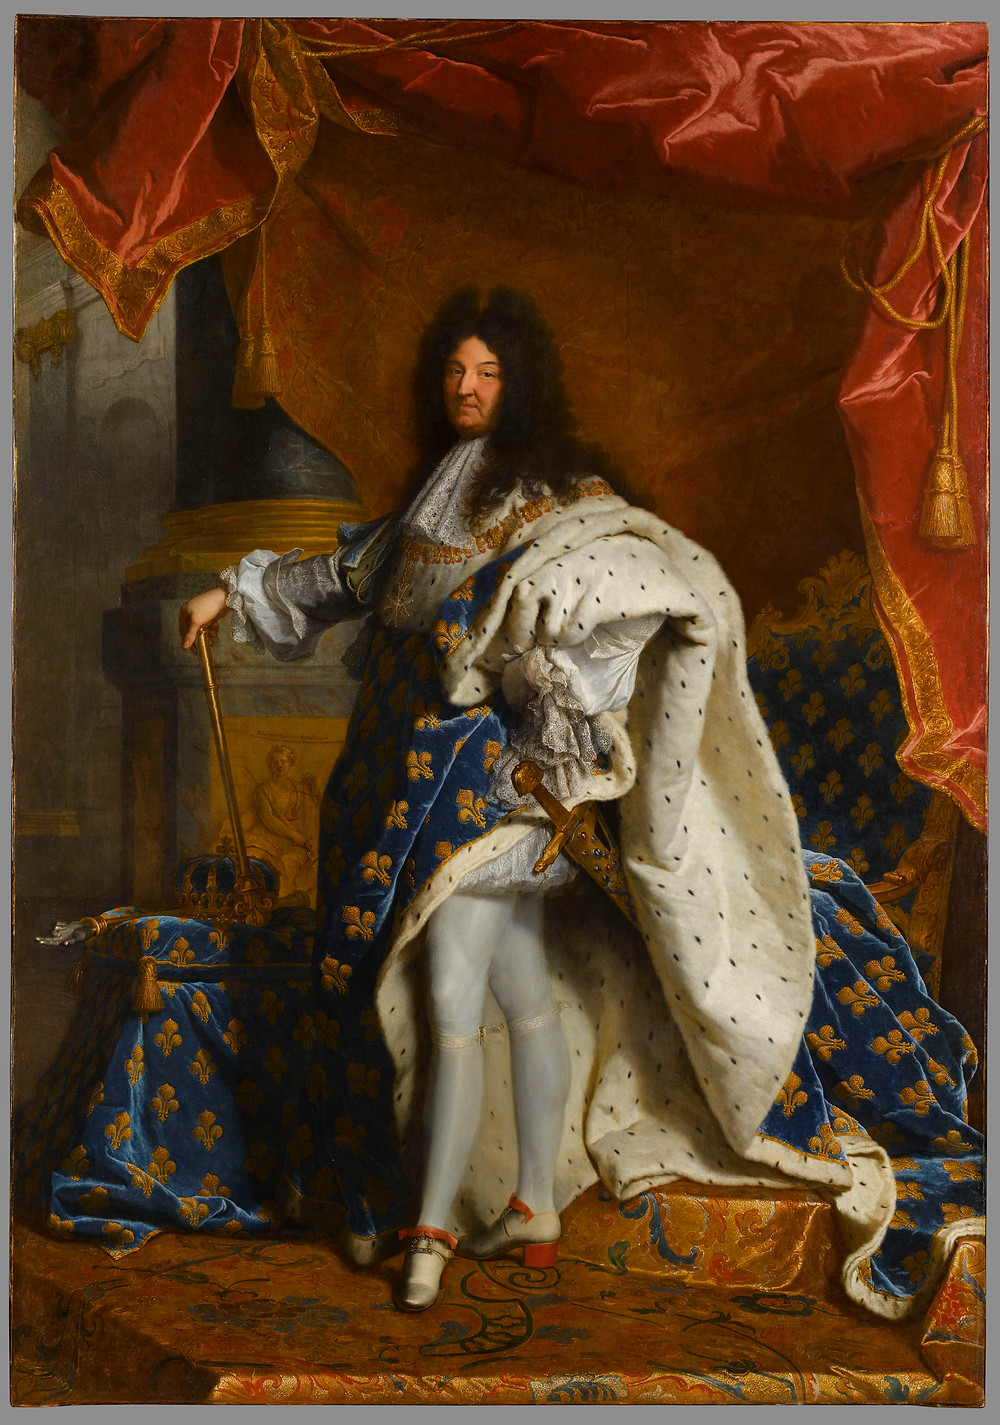 Hyacinthe Rigaud, Portrait de Louis XIV en grand costume royal, 1701-1702, Paris, musée du Louvre, inv. 7492